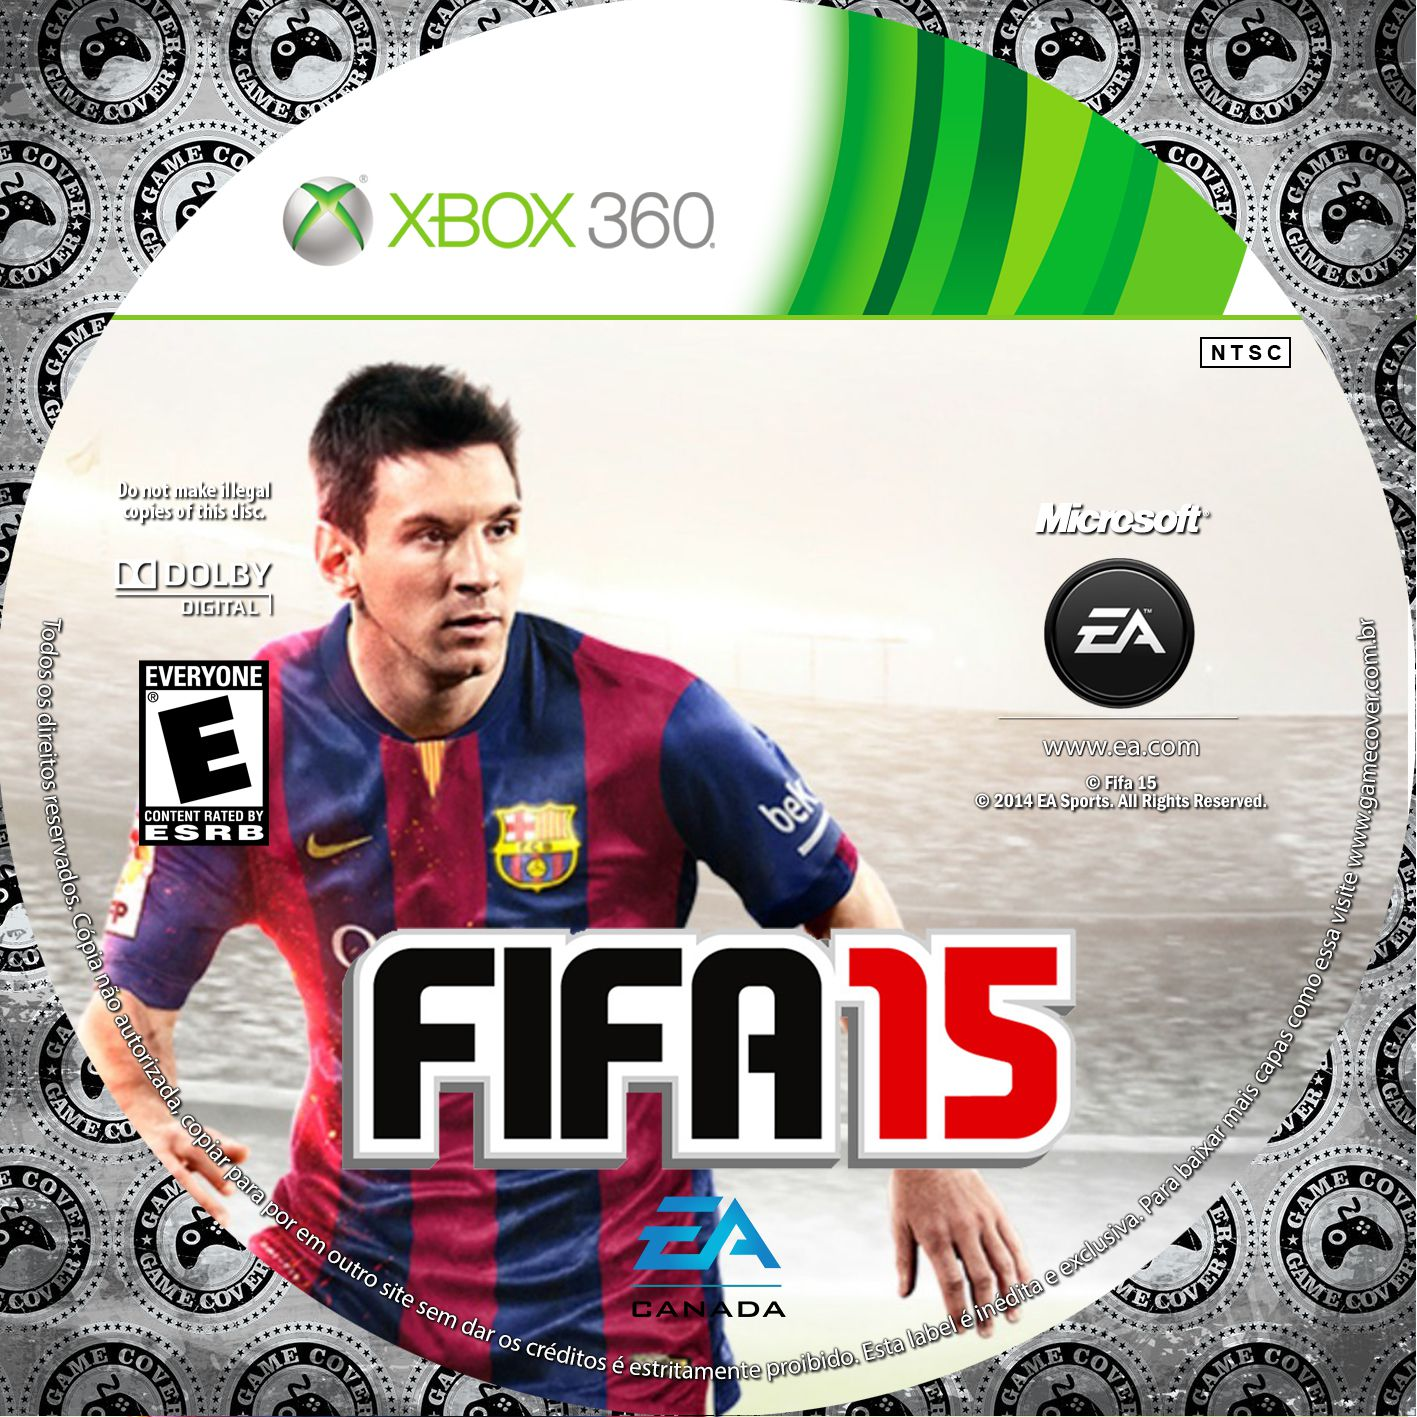 Label Fifa 15 Xbox 360 [Exclusiva]